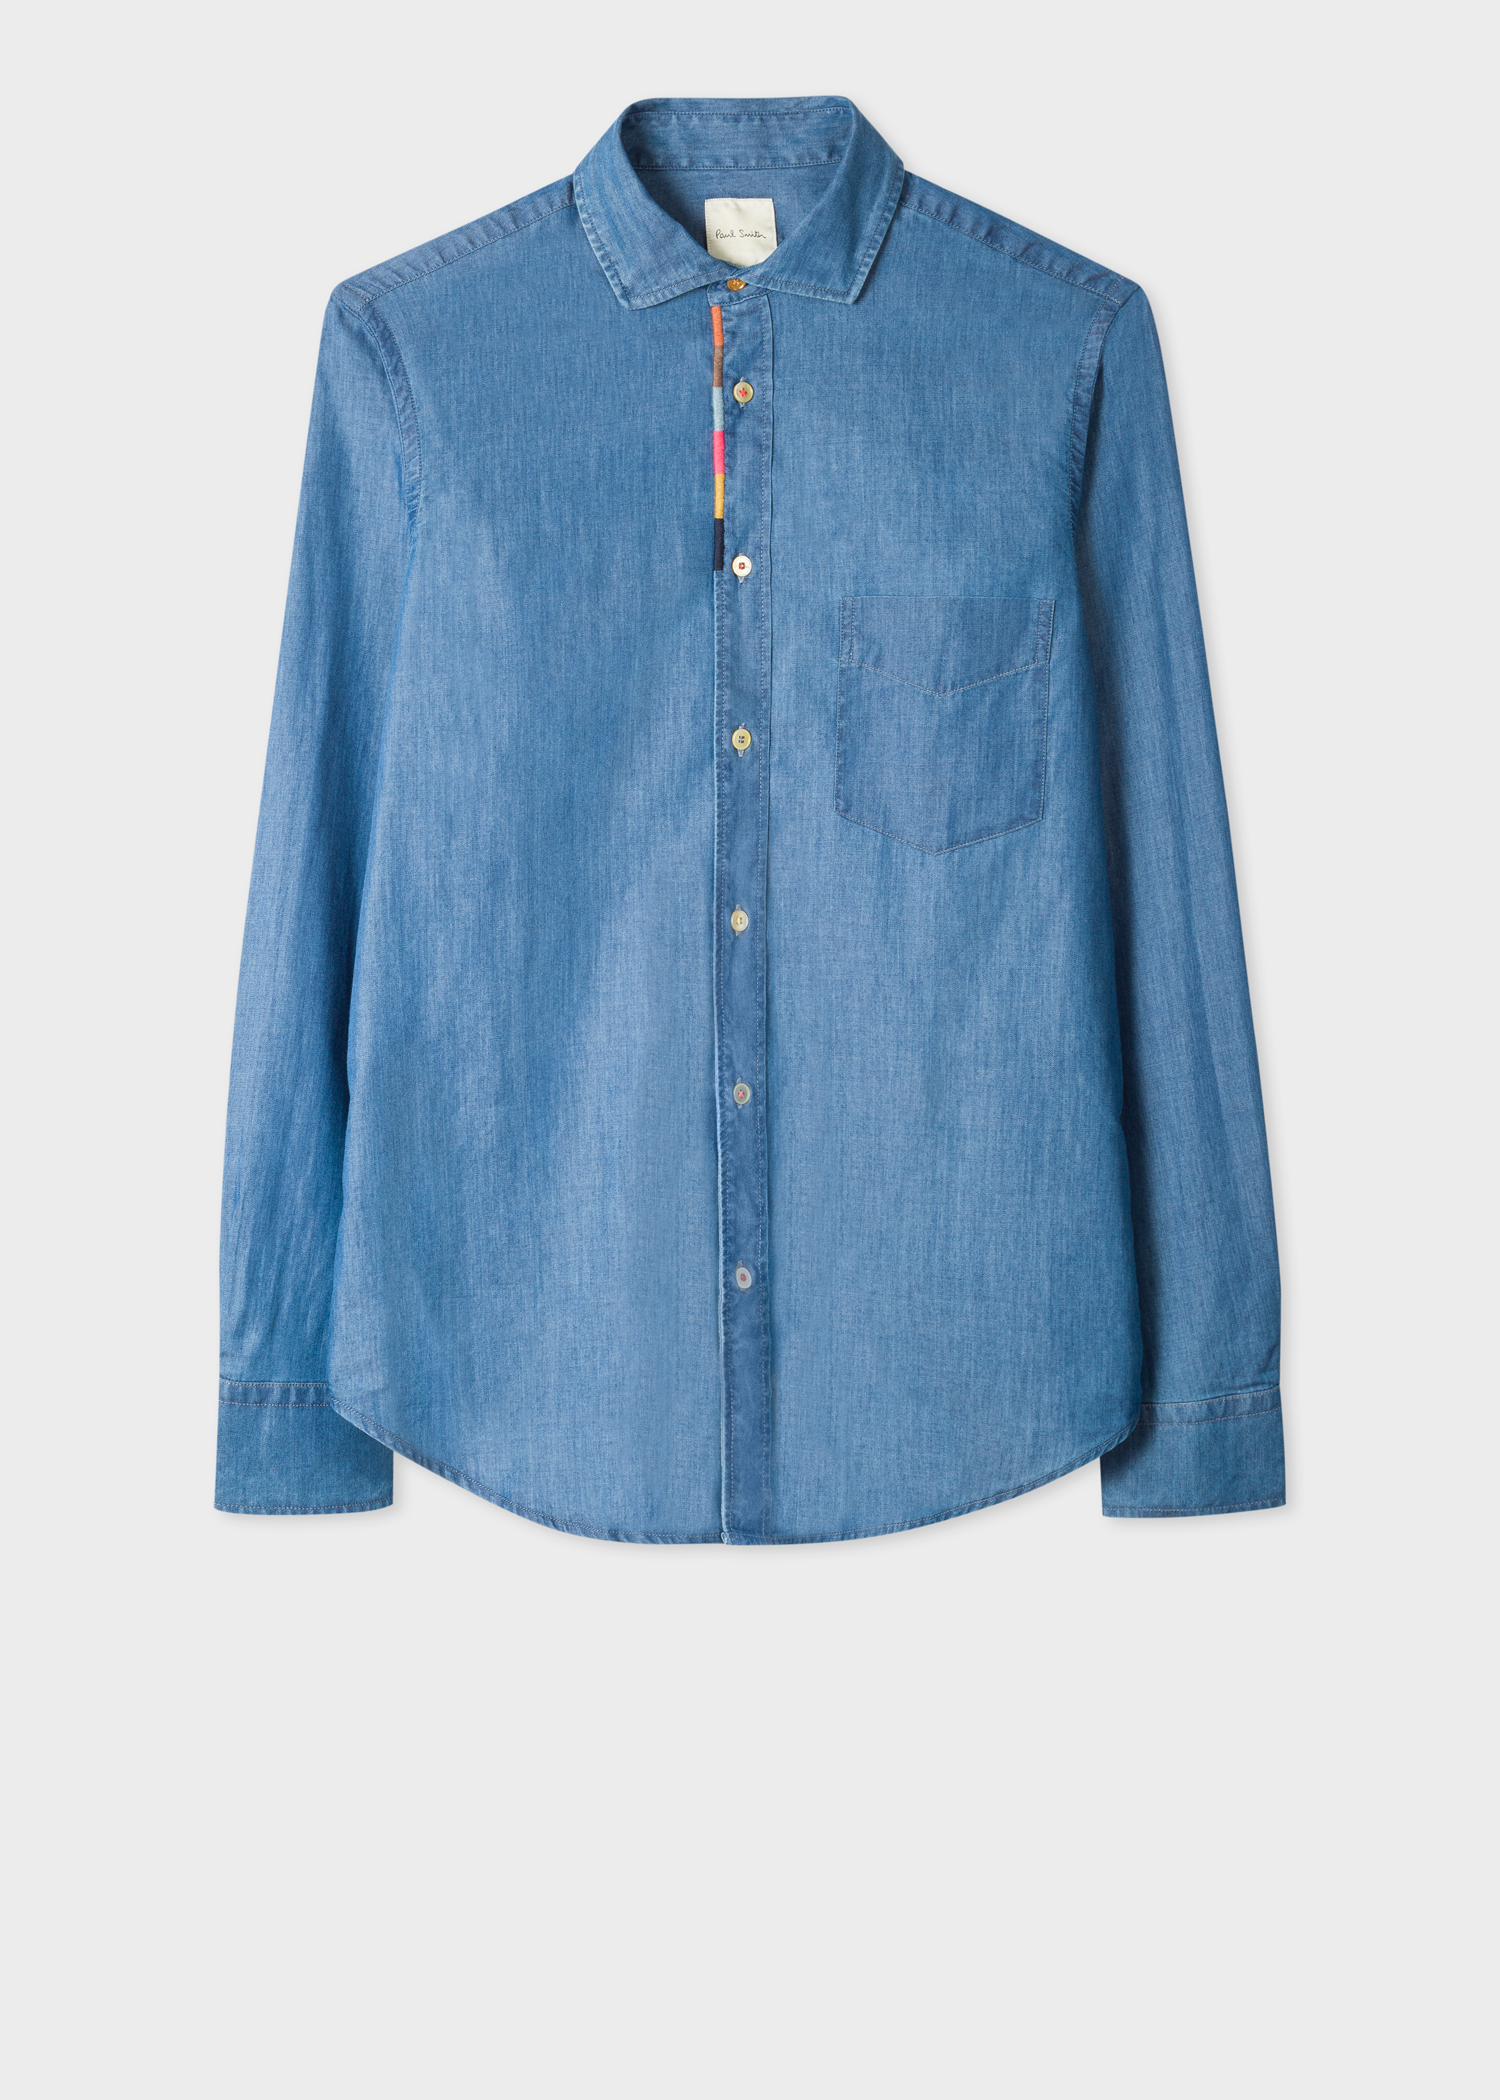 men u0026 39 s tailored-fit blue chambray shirt with  u0026 39 artist stripe u0026 39  placket embroidery detail